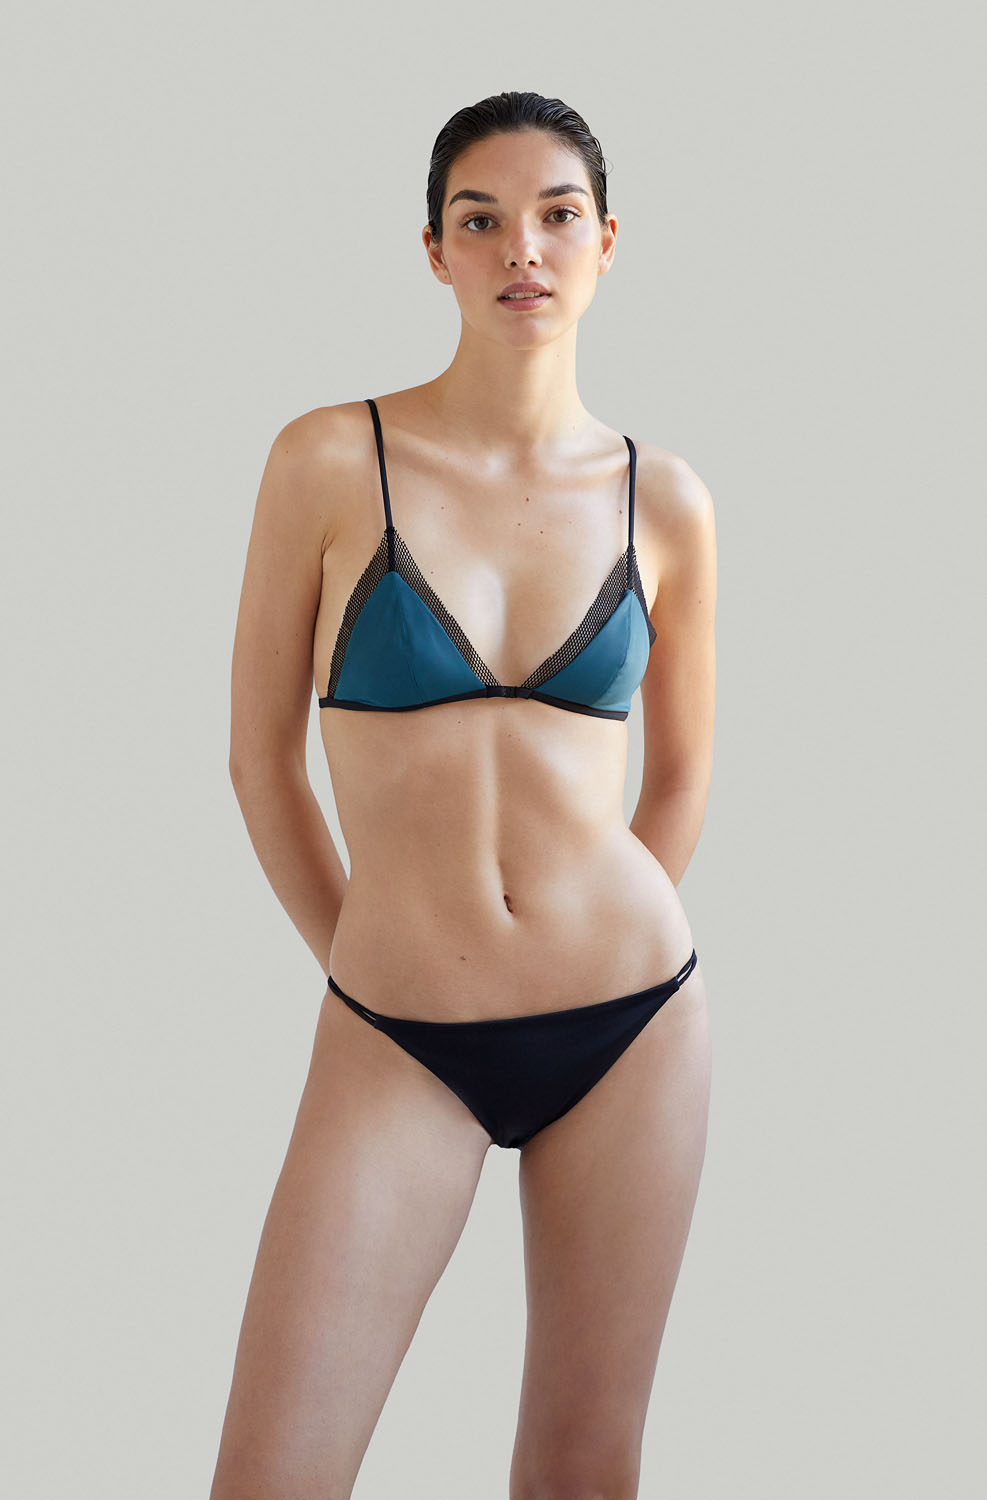 Sustainable Luxury Swimwear / Ropa de baño sostenible, eco bikini / bikini ecológico. Mana + Milos in algae, by NOW_THEN